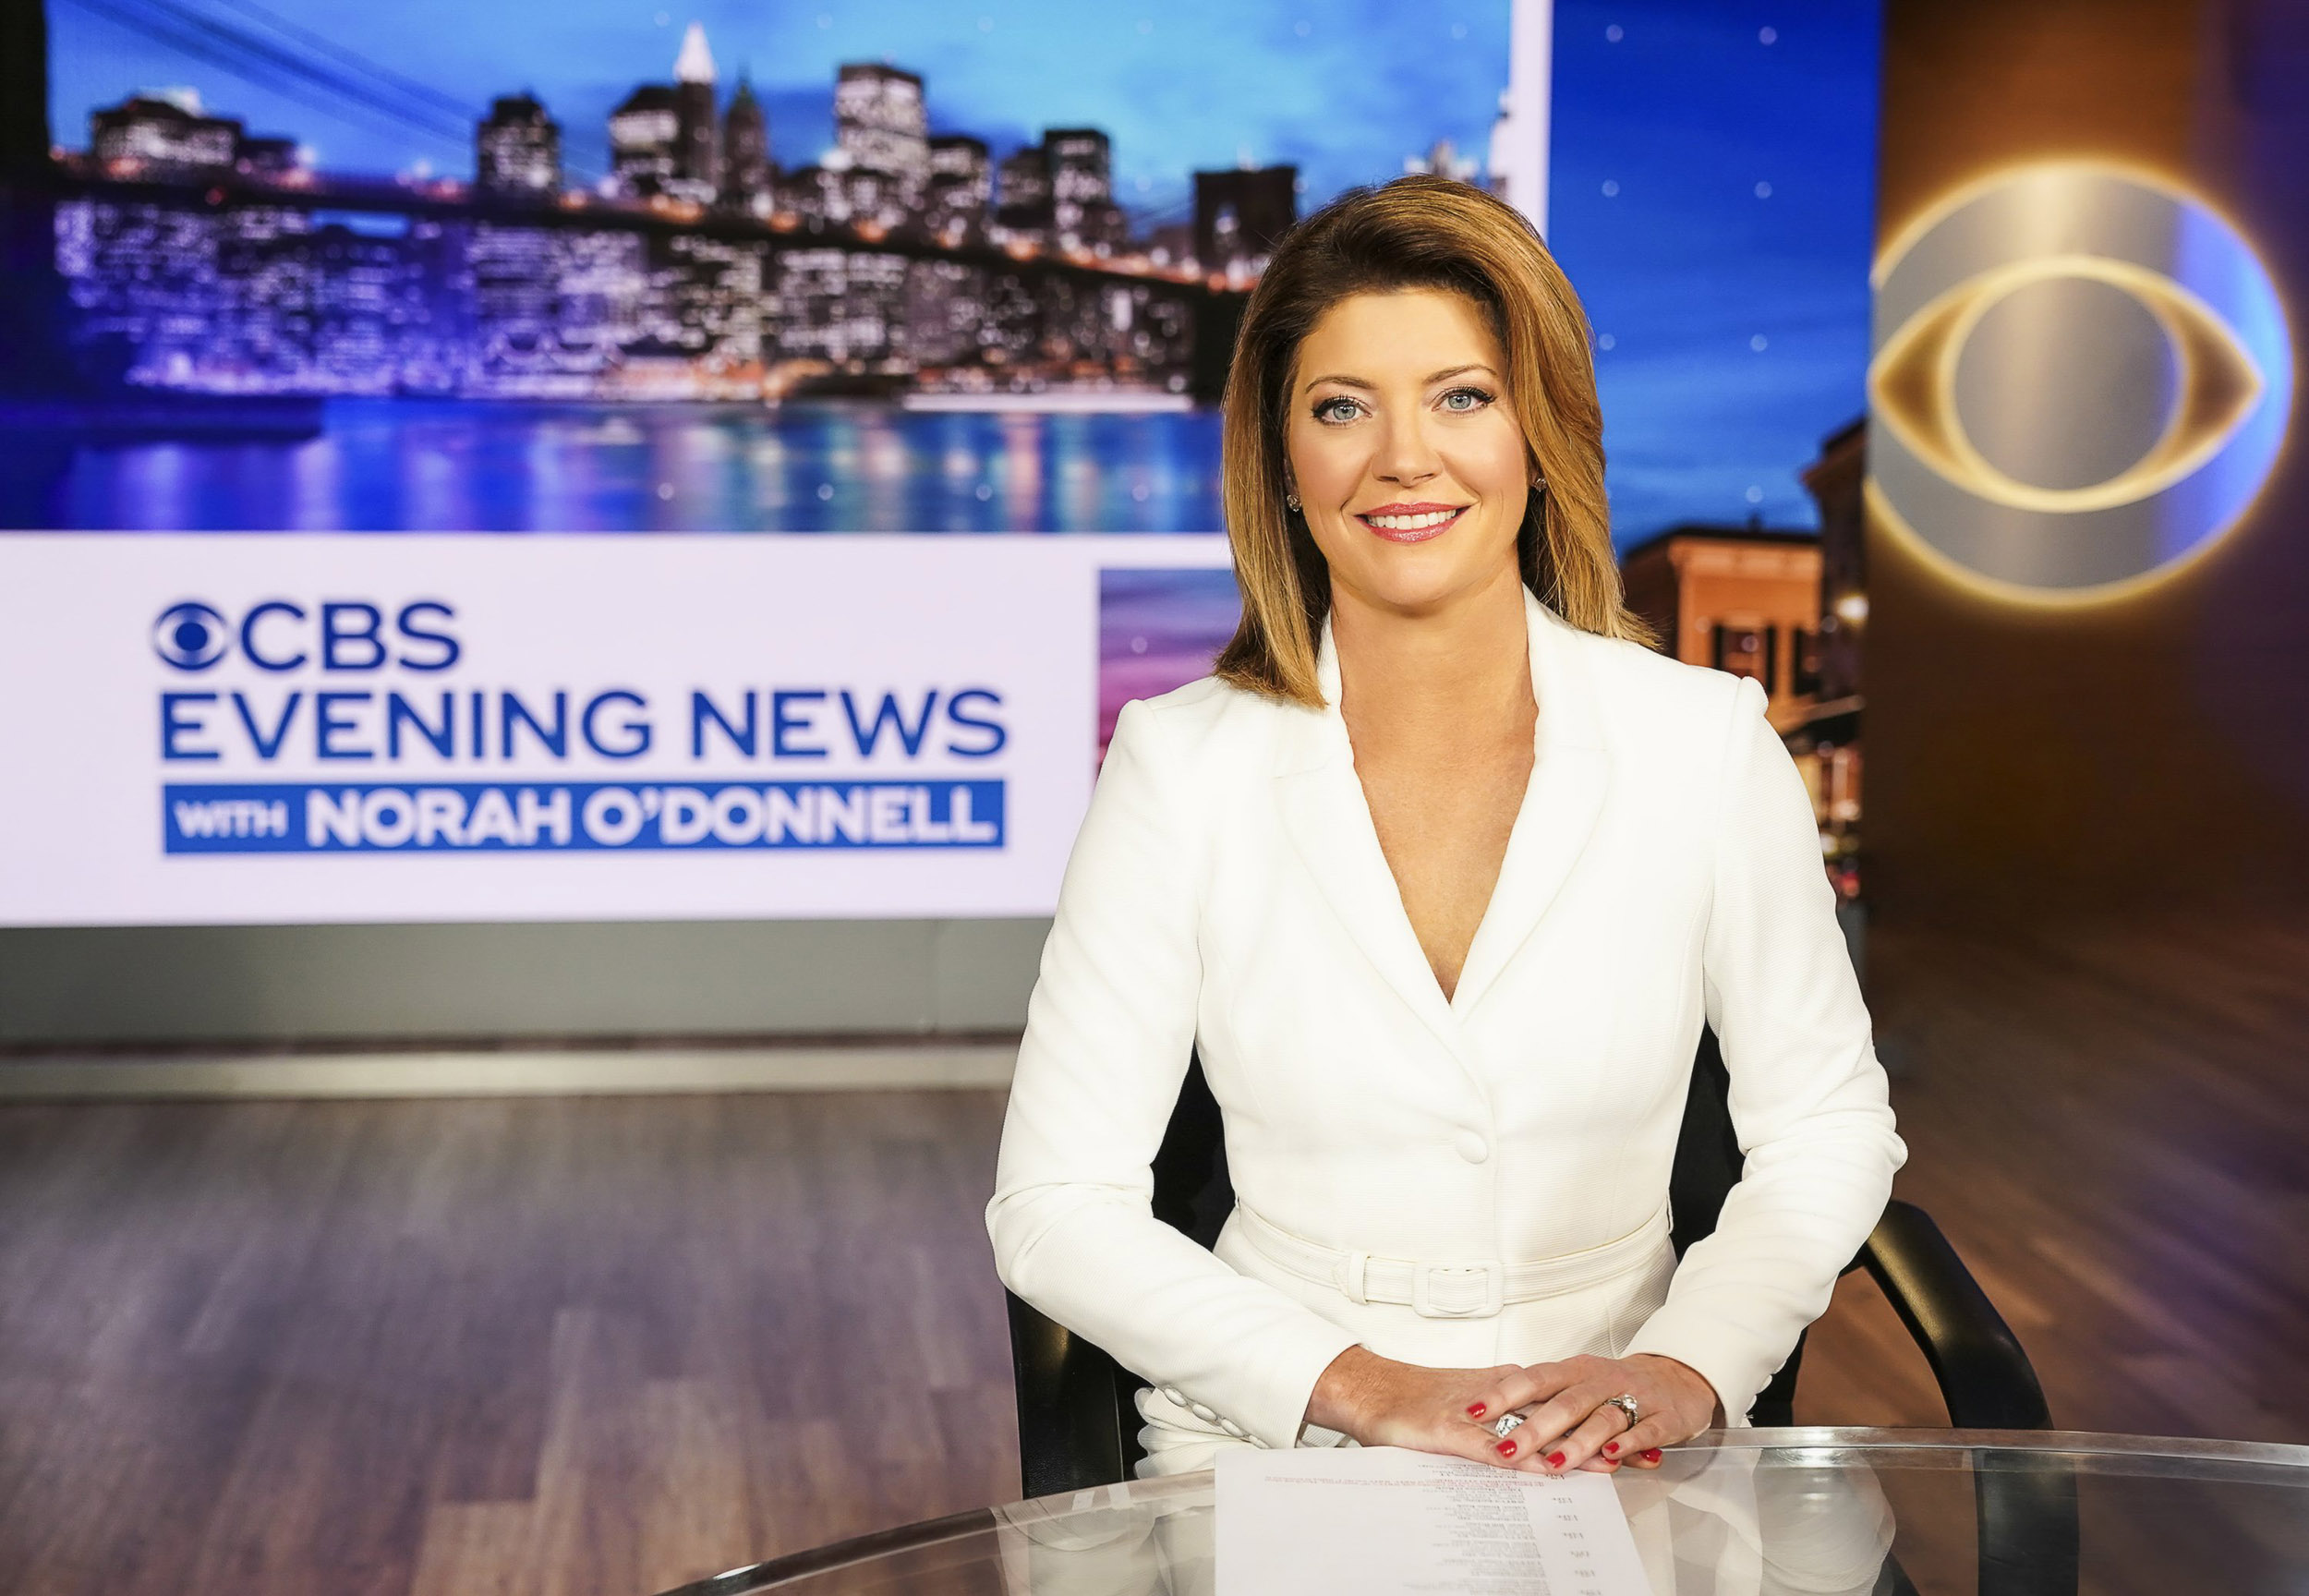 CBS News' Norah O'Donnell caught on hot mic talking about